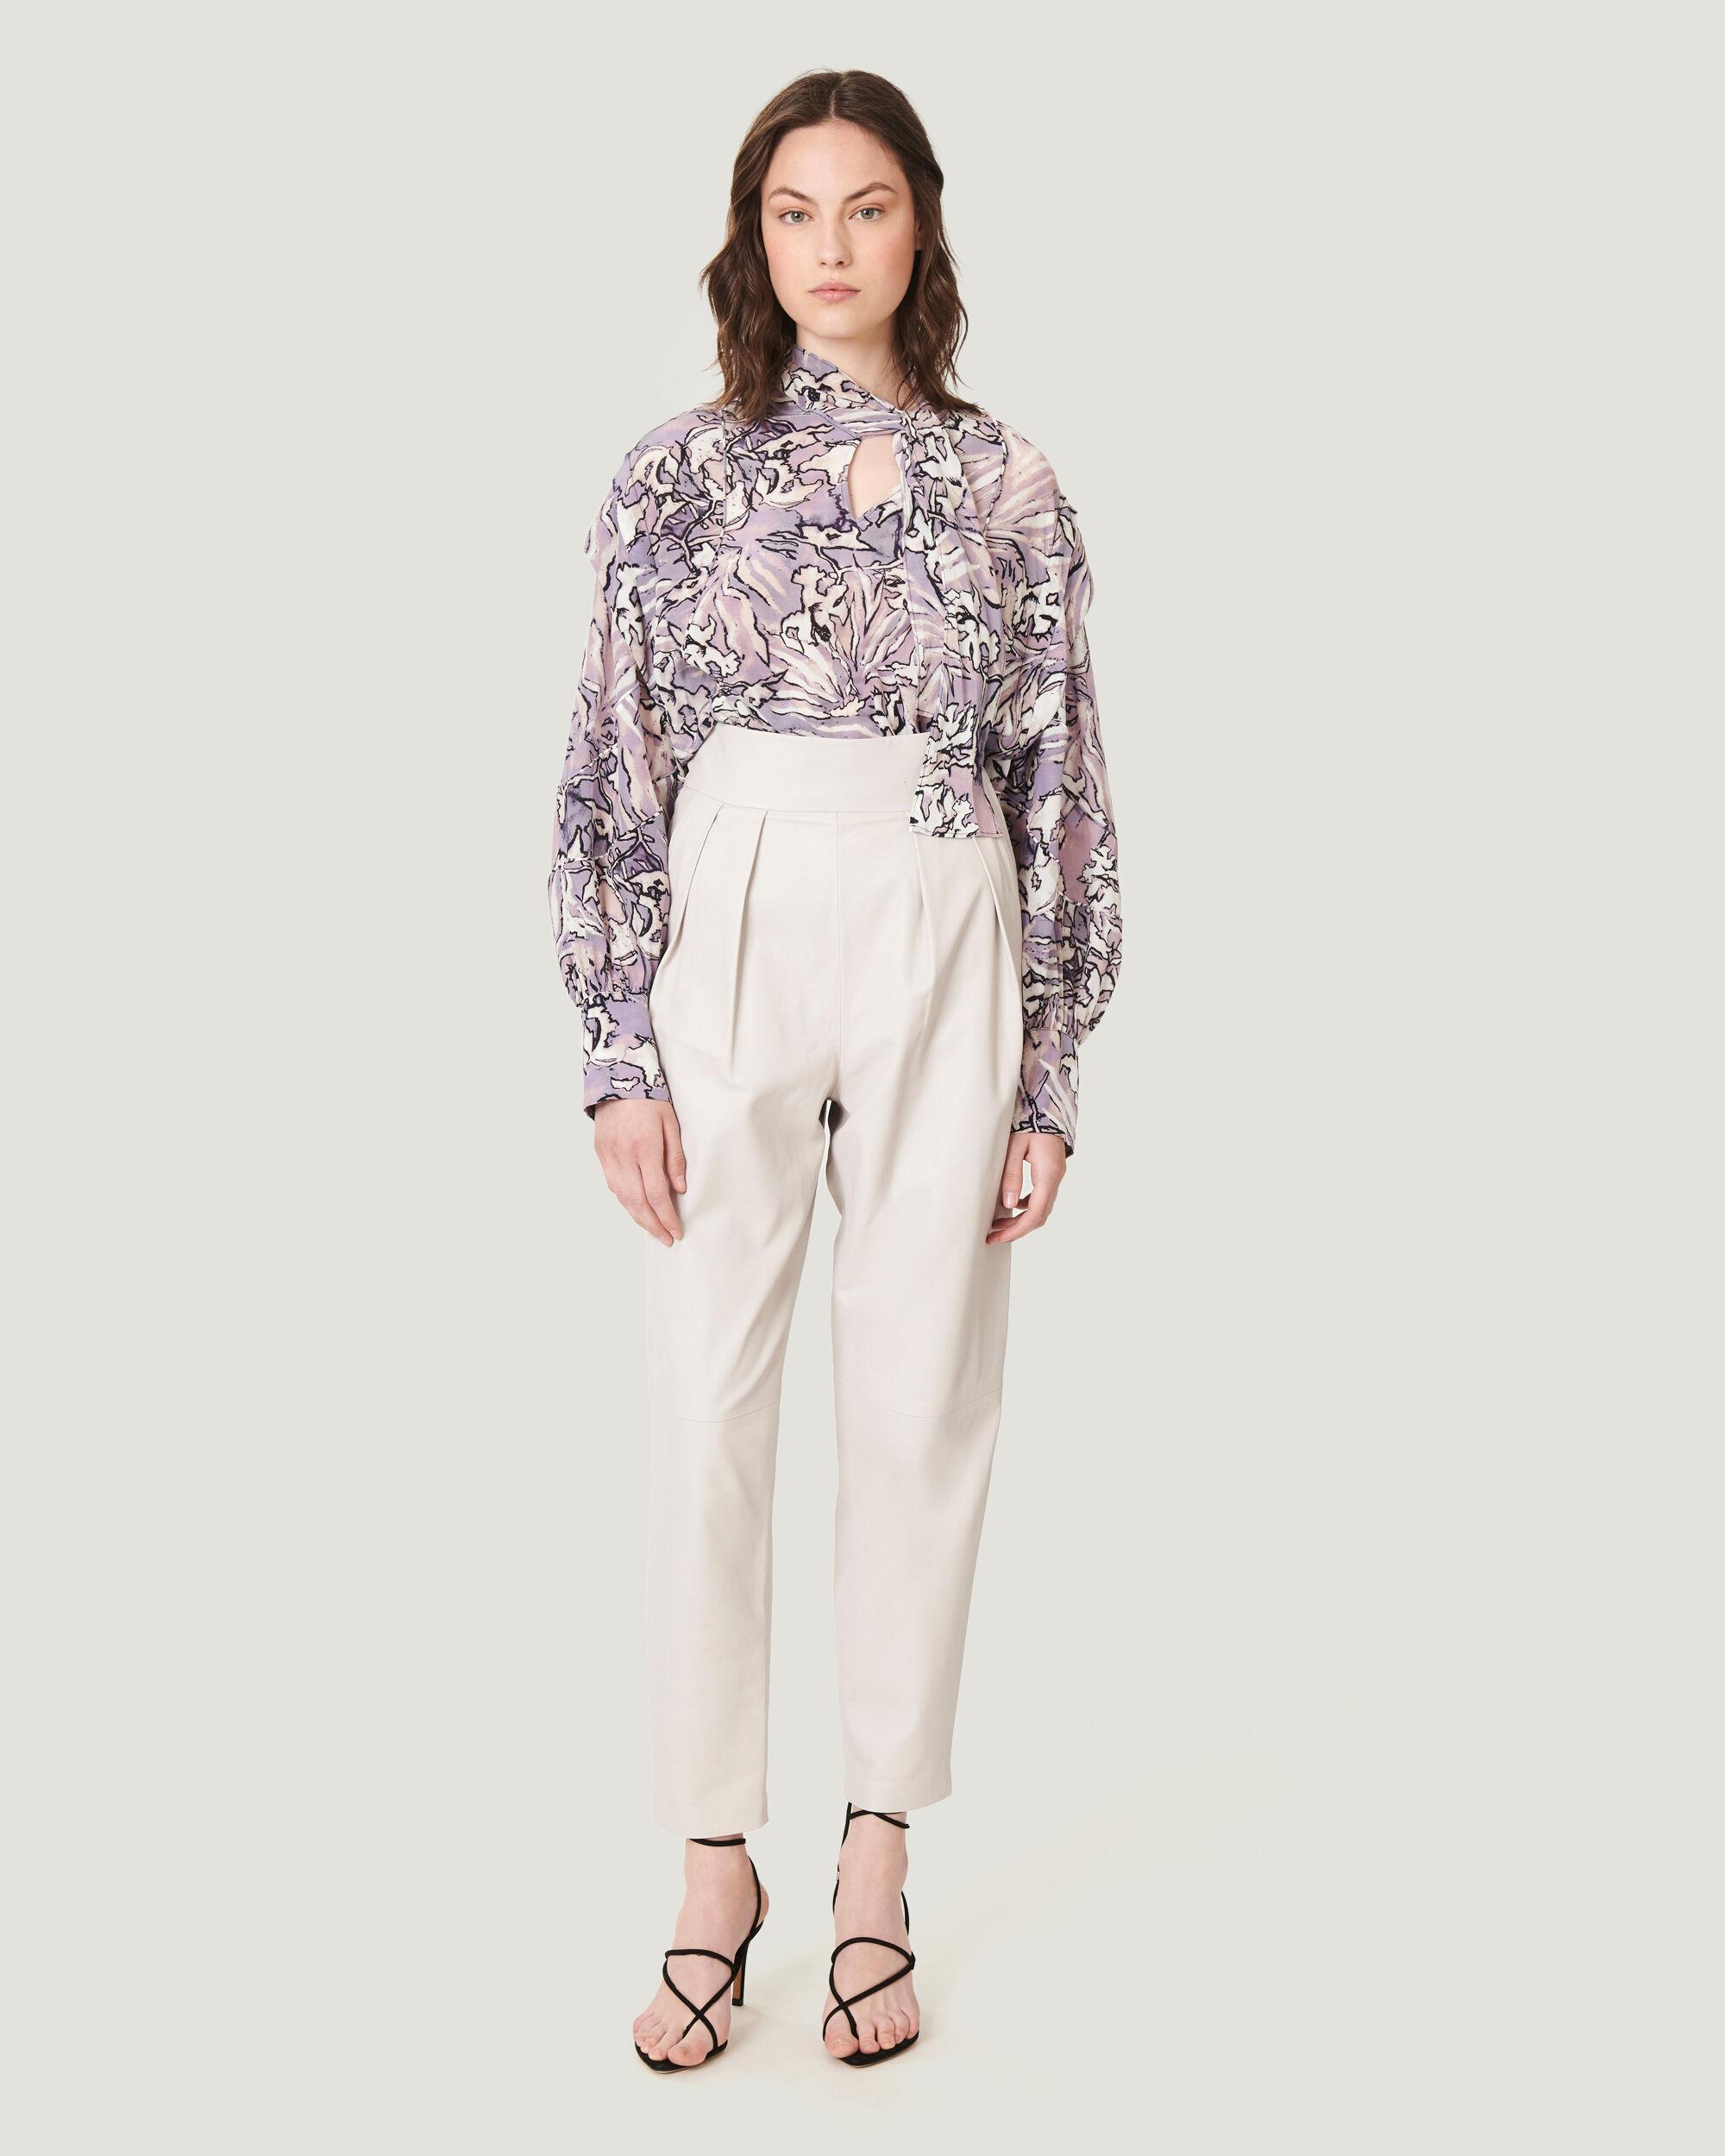 BISHO TAILORED HIGH WAIST LEATHER TROUSERS